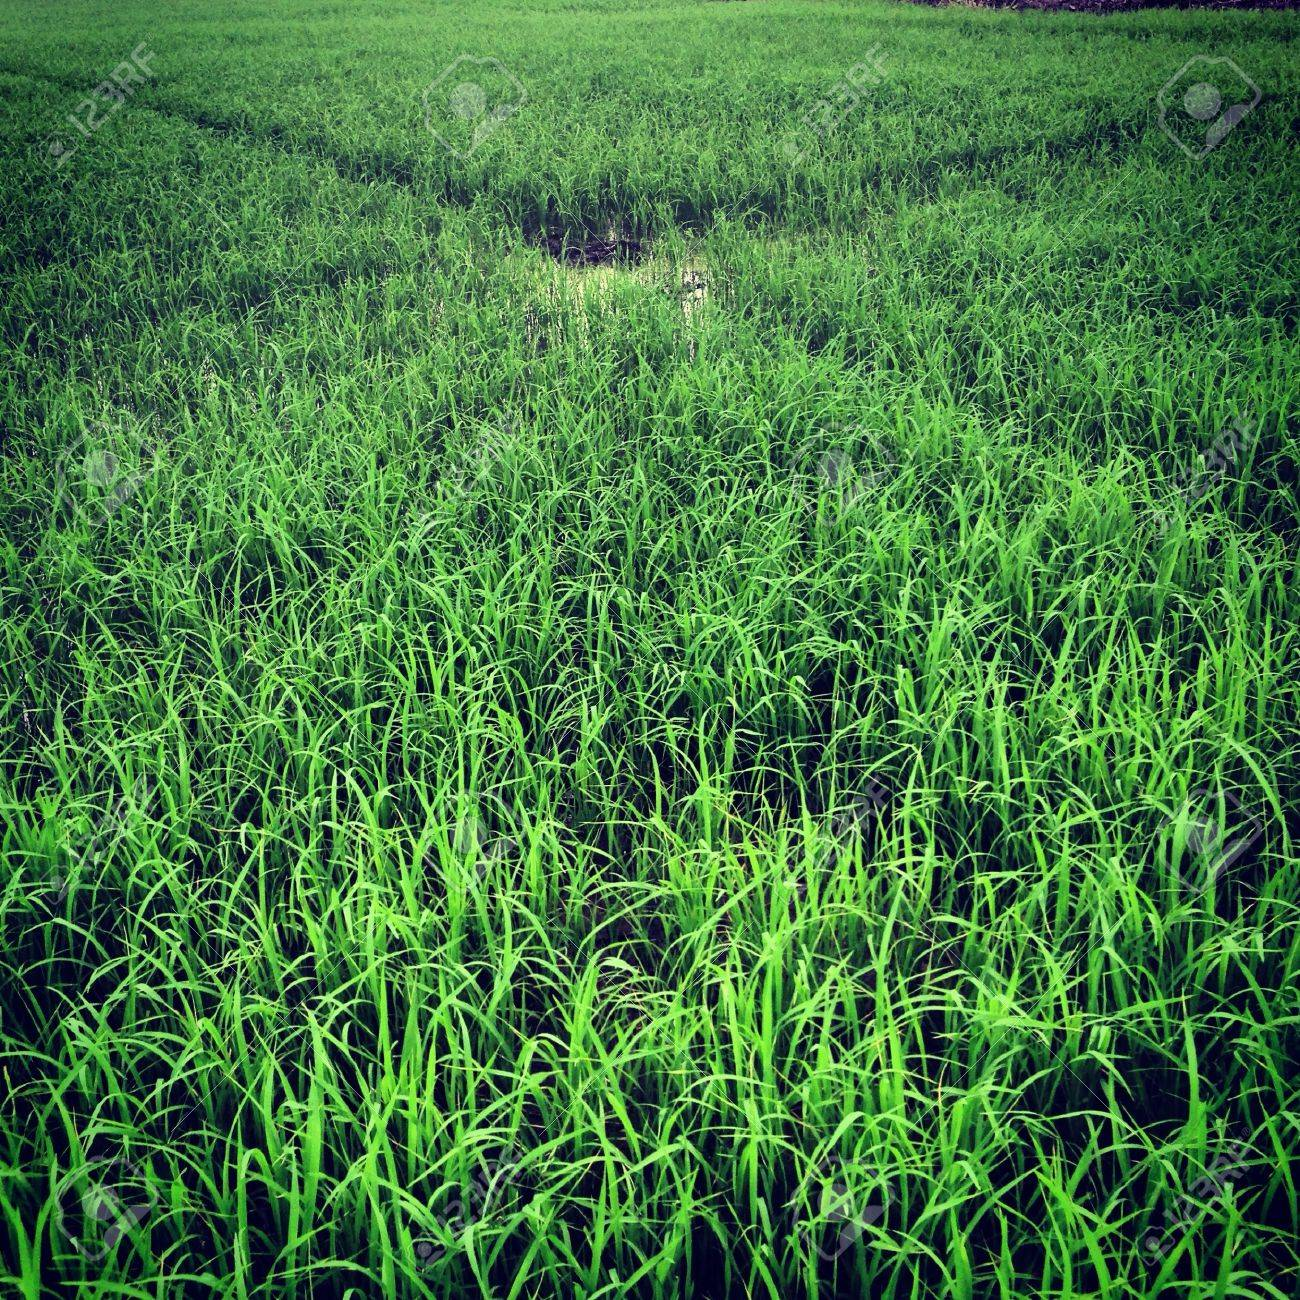 The green rice field in the countryside - 21342194